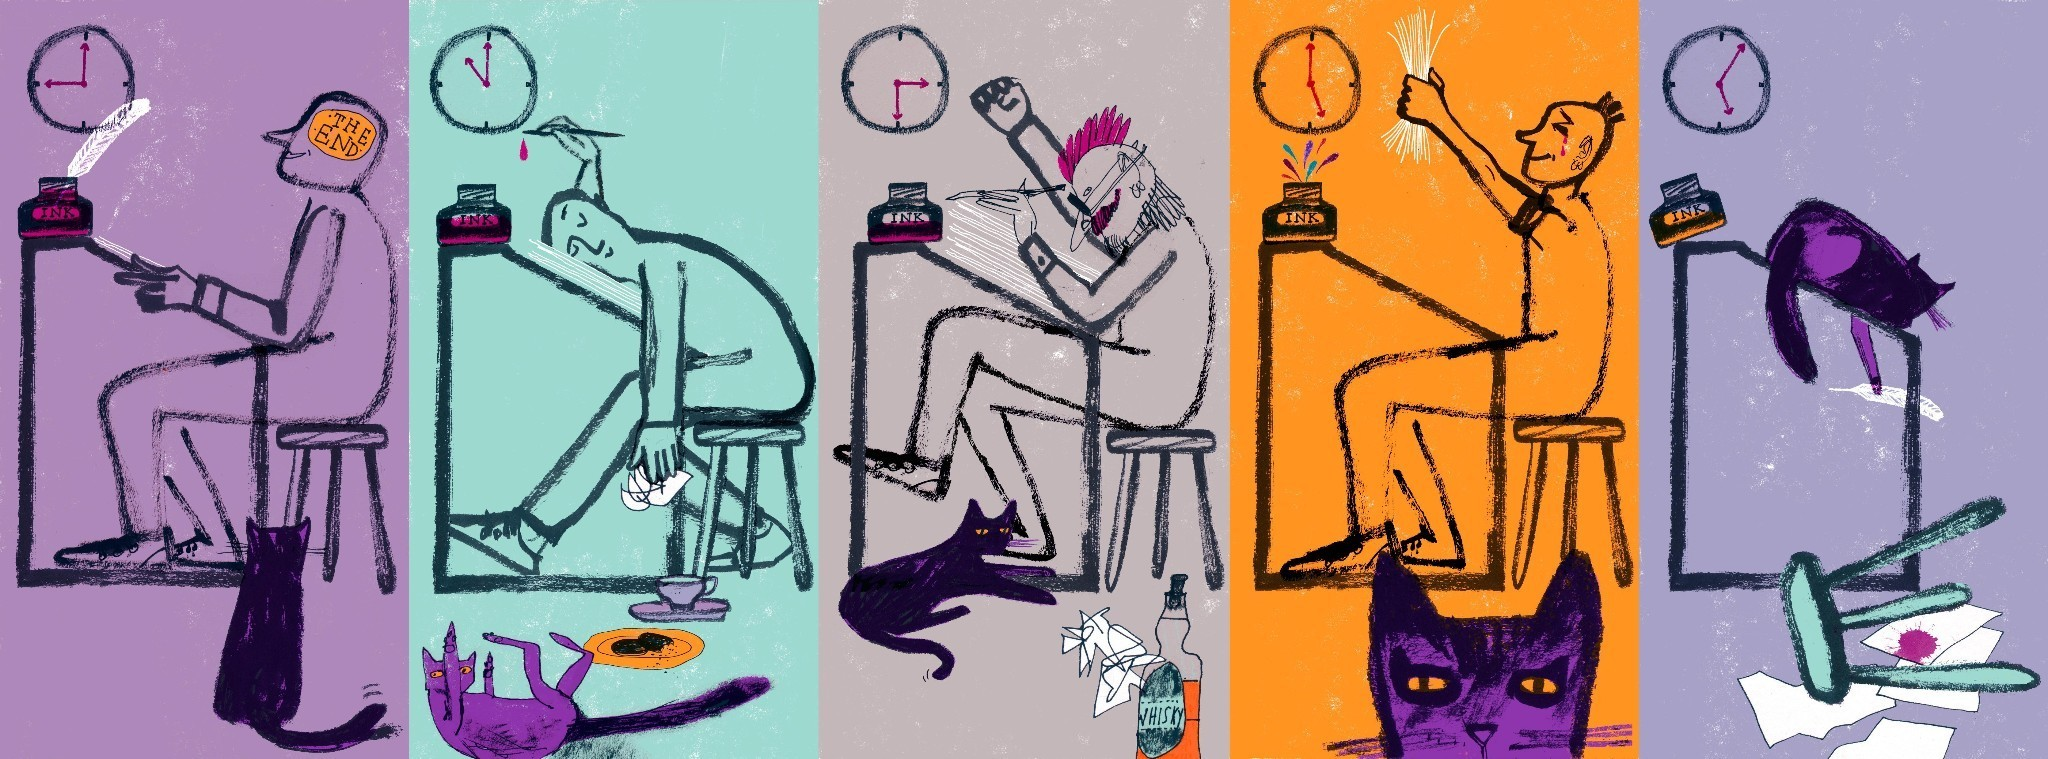 My best writing tip by William Boyd, Jeanette Winterson, Amit Chaudhuri and more